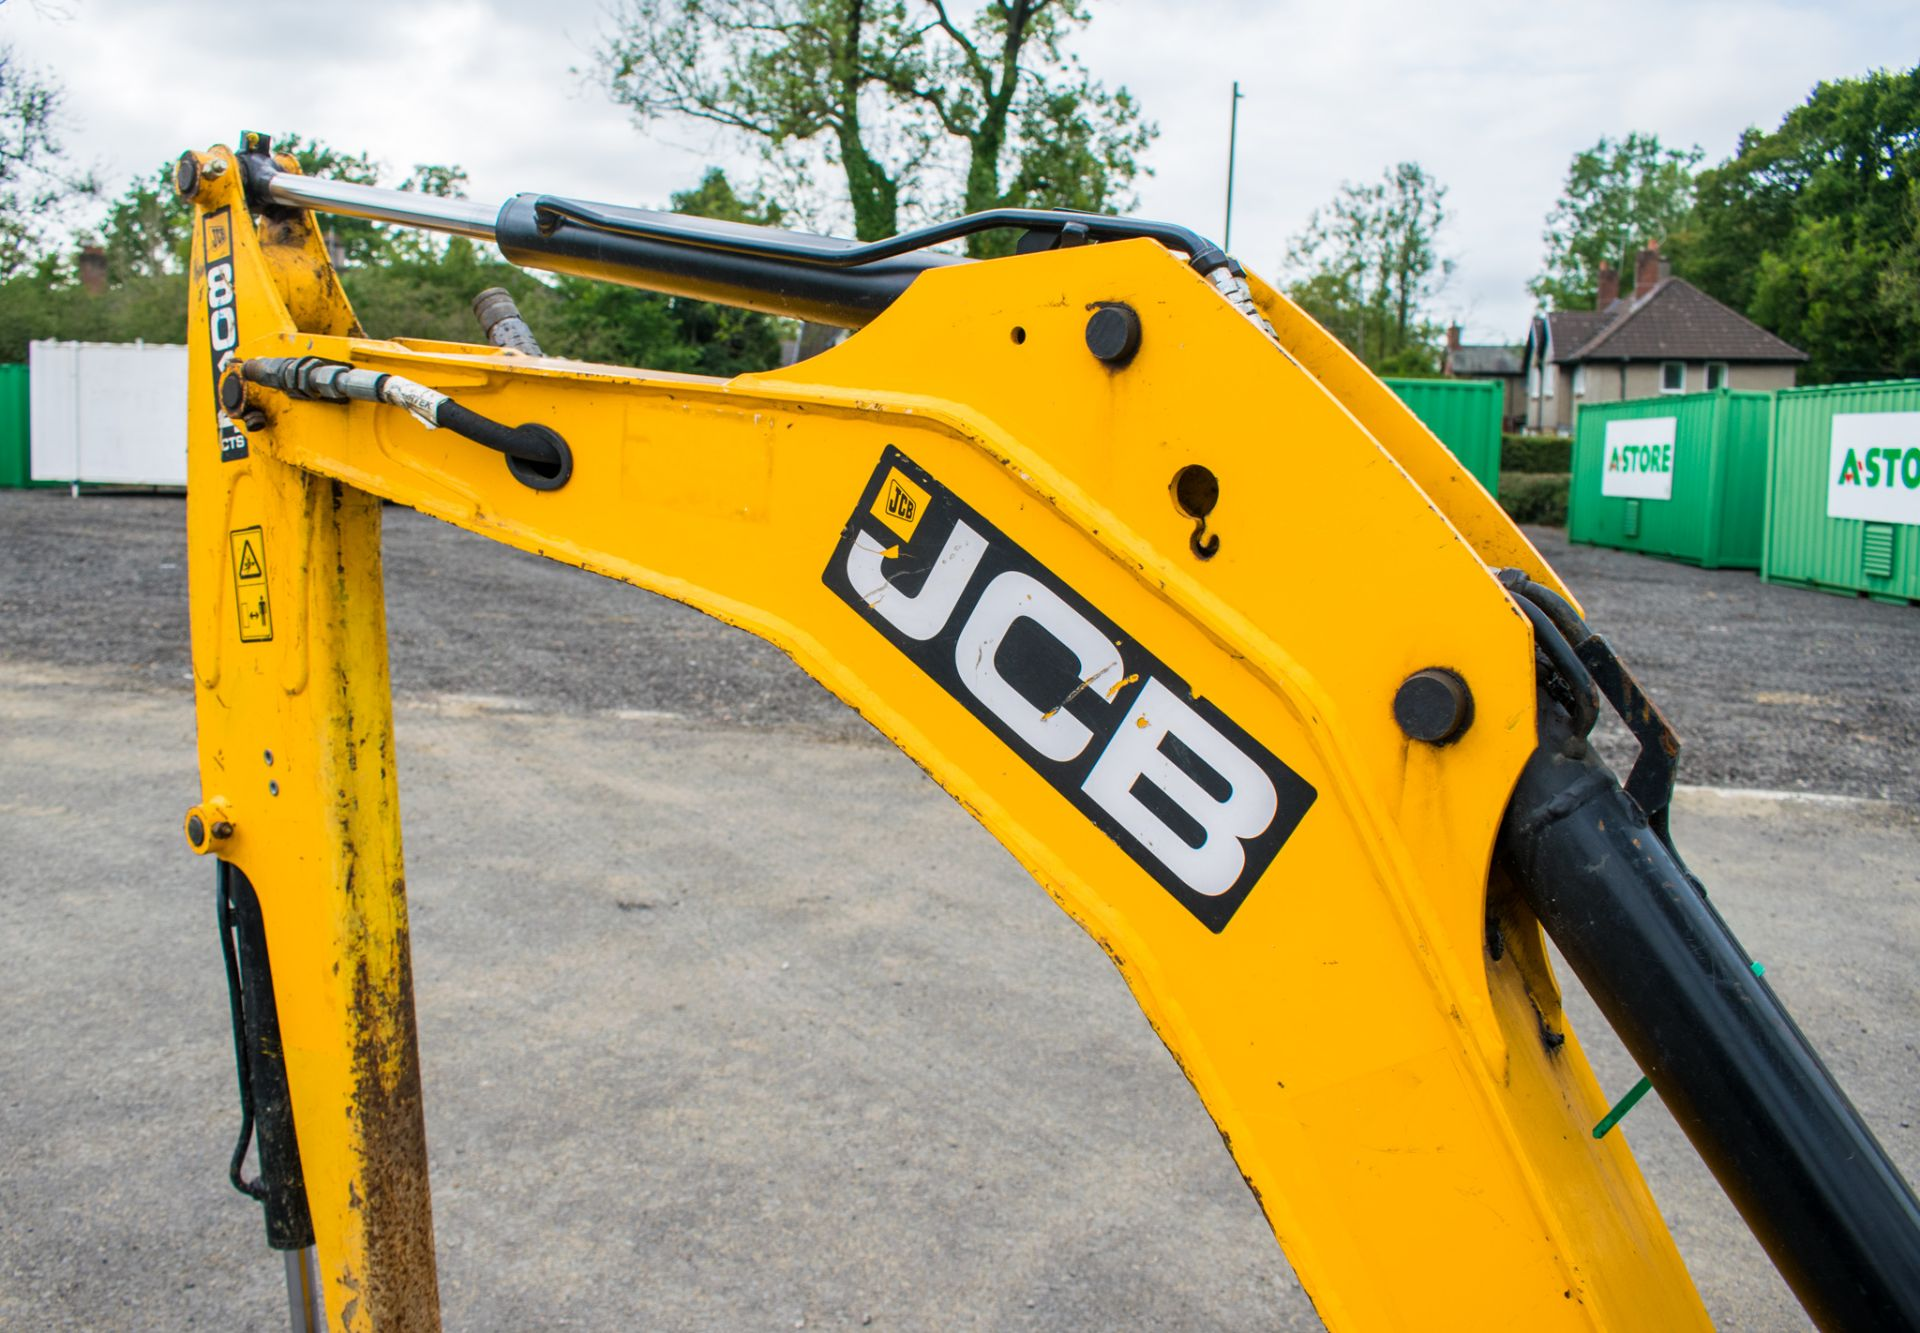 Lot 18 - JCB 8014 CTS 1.4 tonne rubber tracked mini excavator Year: 2014 S/N: 70481 Recorded Hour: 1527